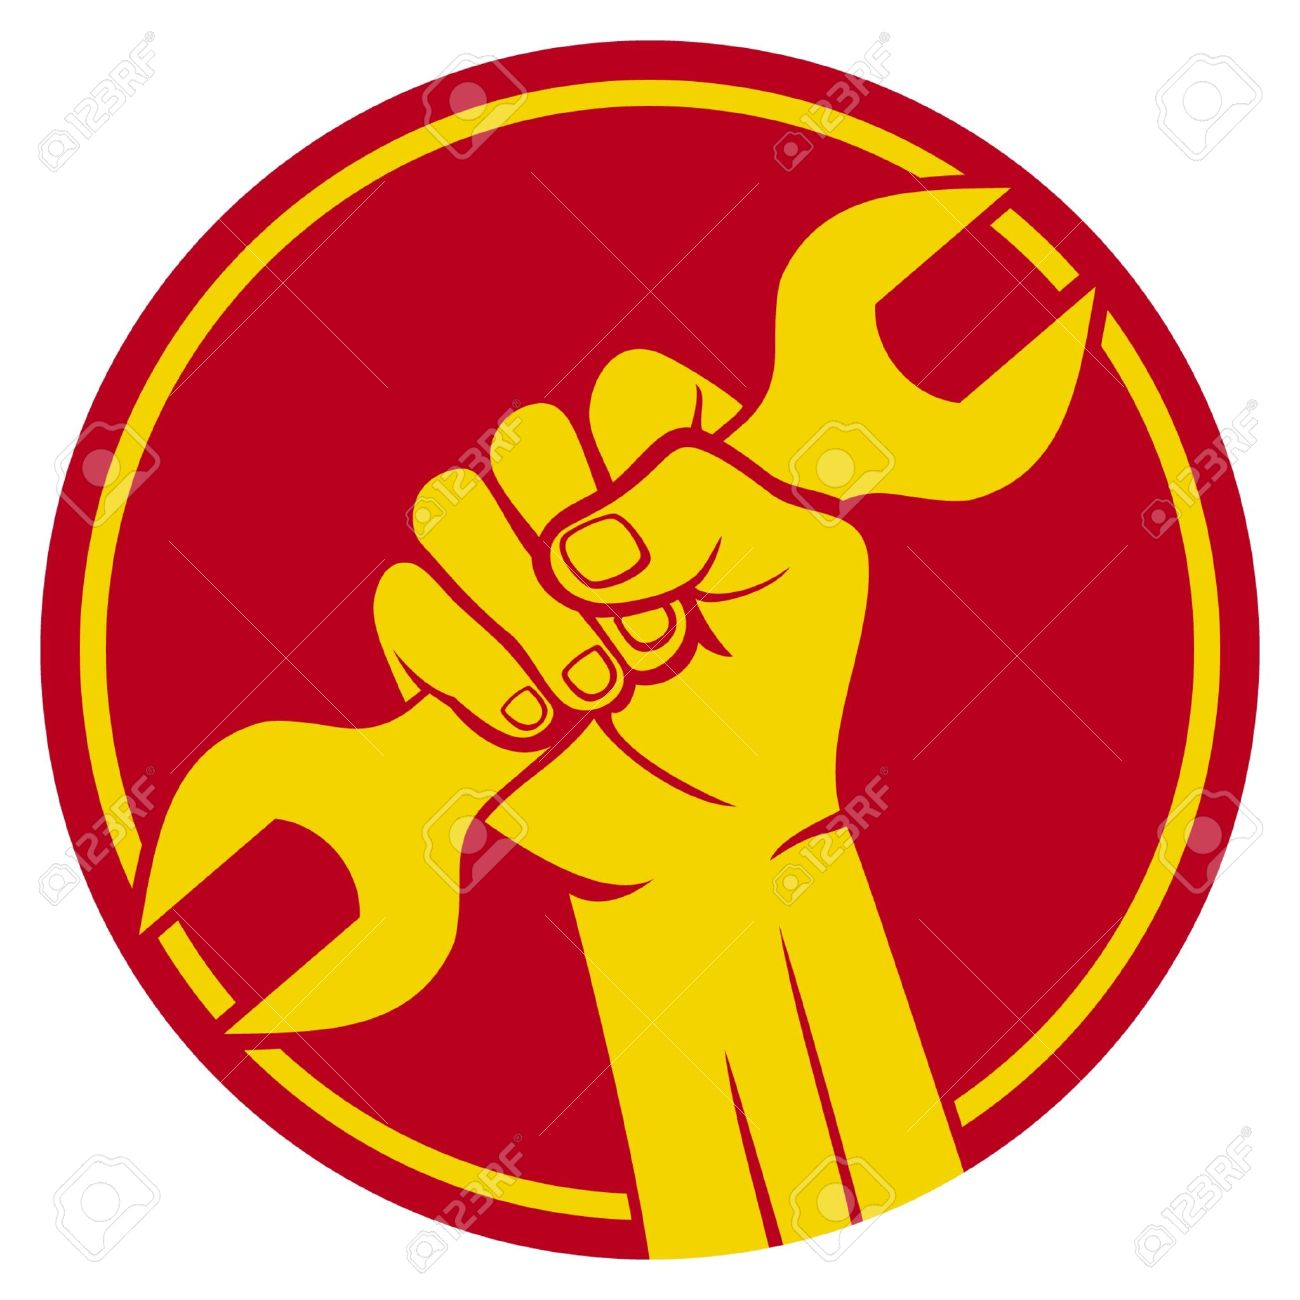 worker sign fist and wrench - 15227317